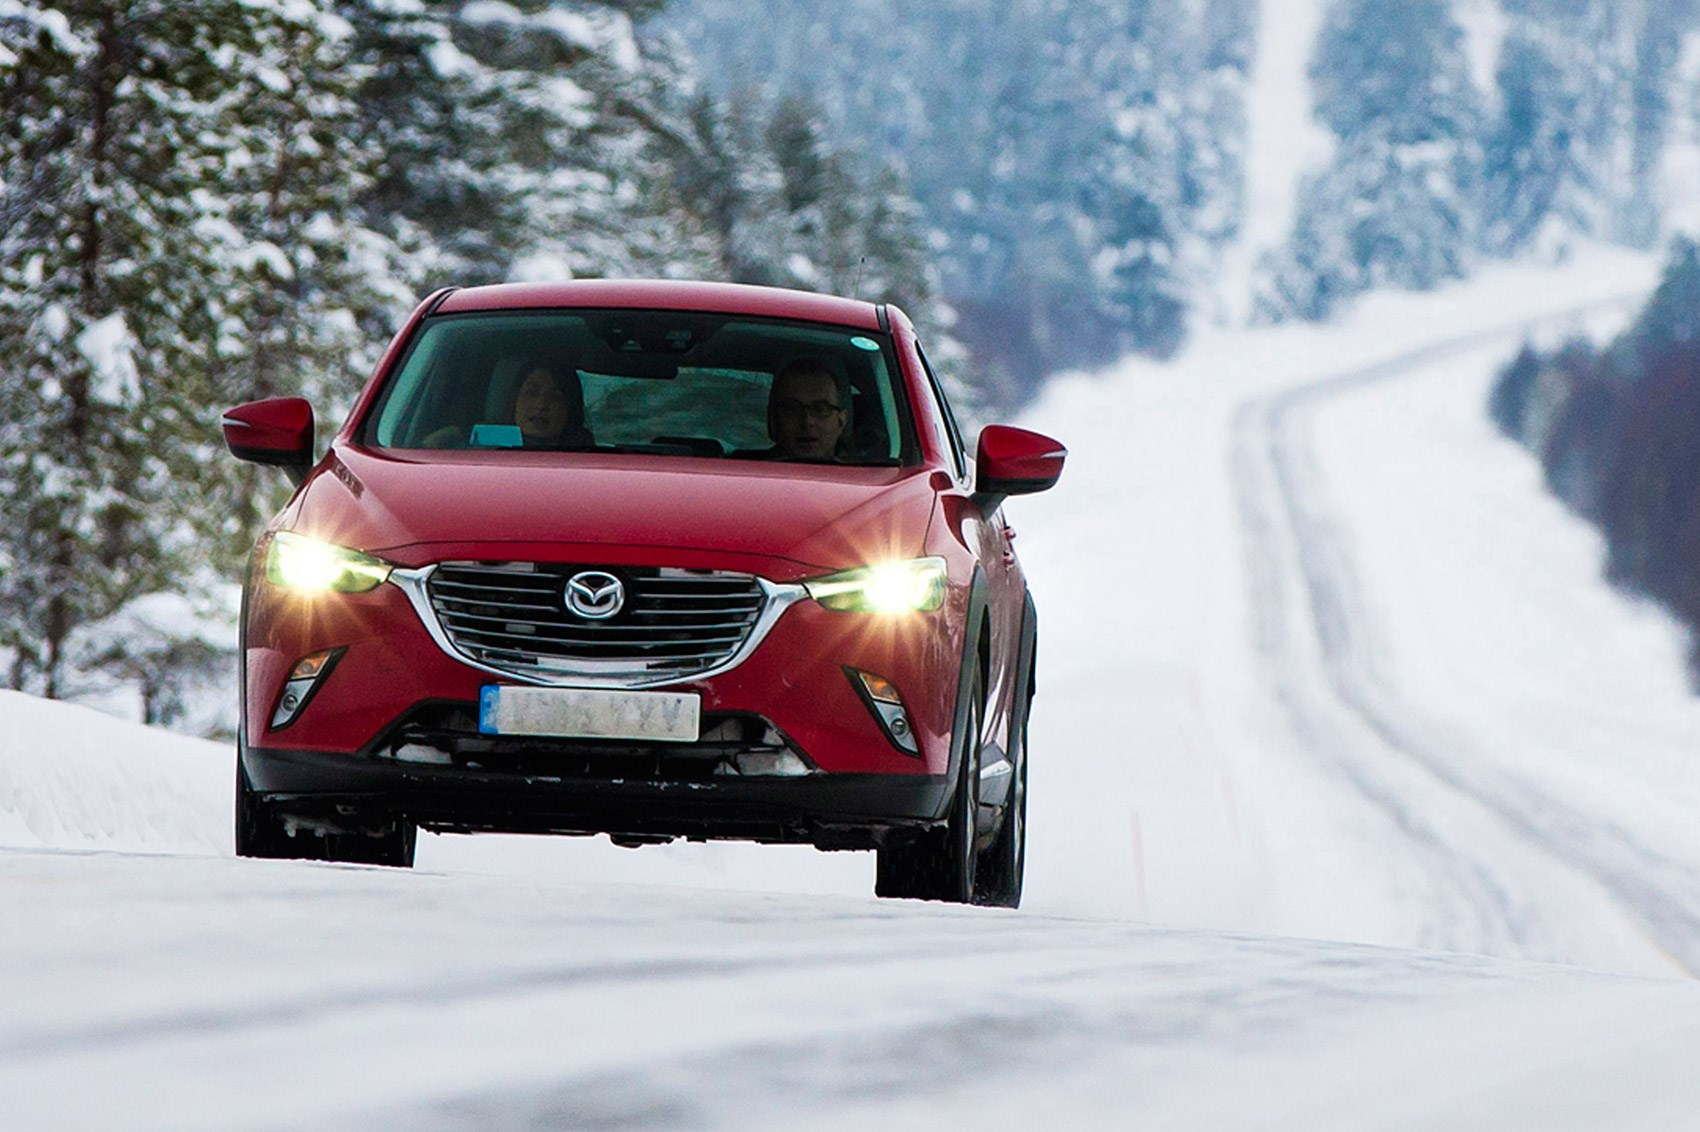 arctic role play all wheel drive mazda cx 3 tested to extremes by car magazine. Black Bedroom Furniture Sets. Home Design Ideas